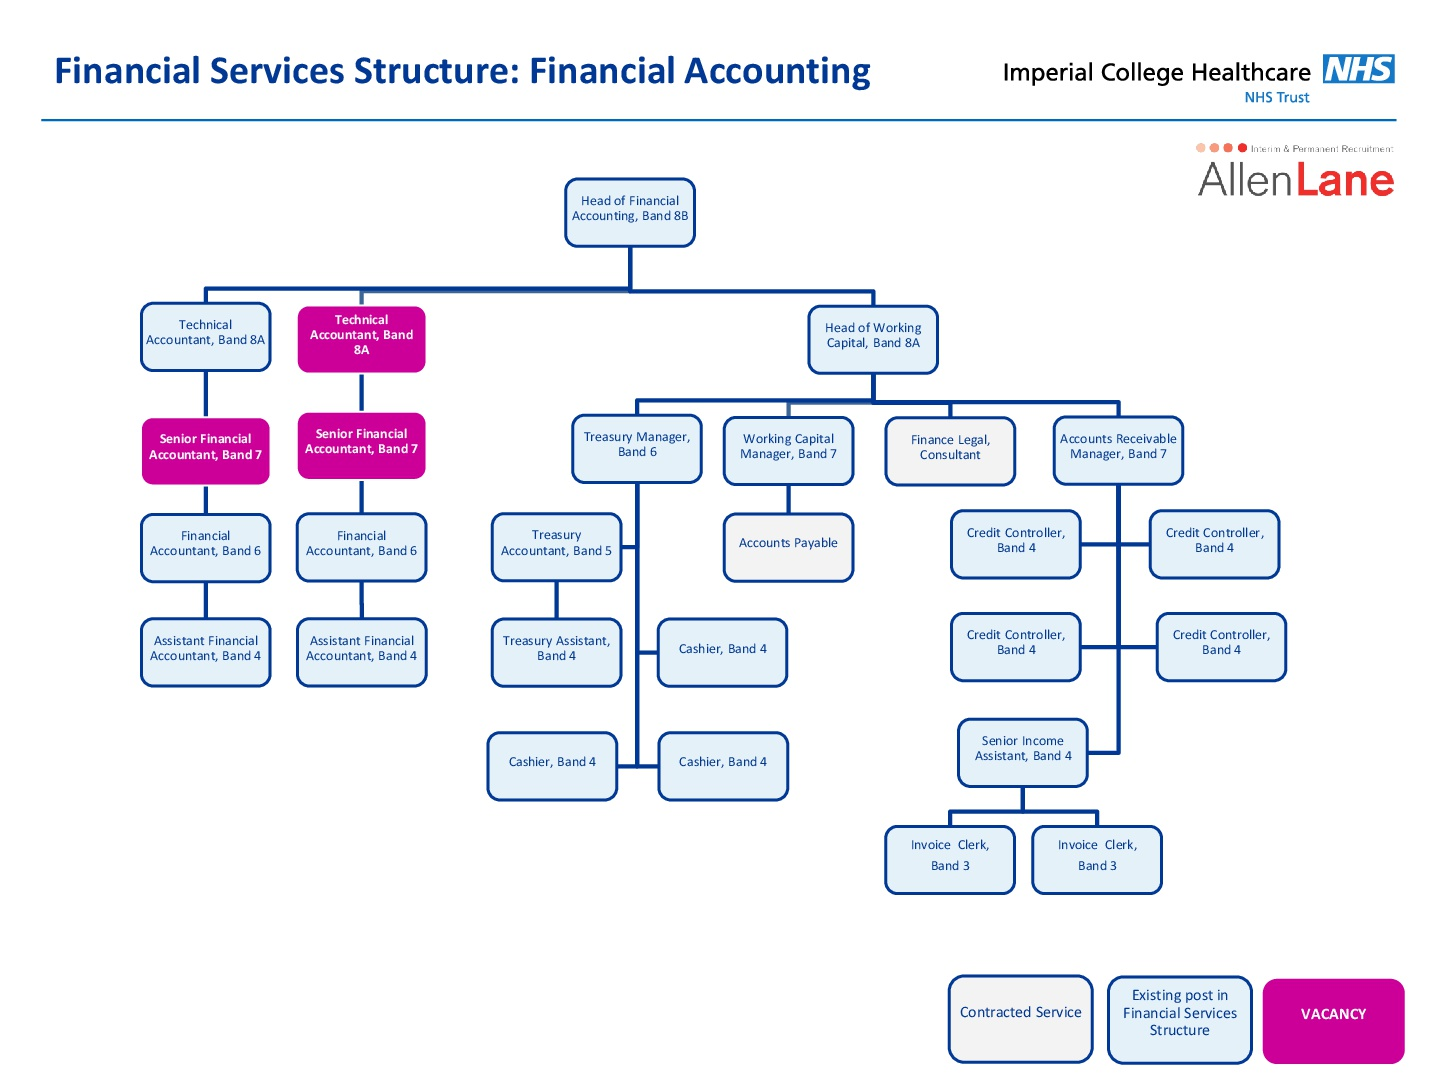 Financial Accounting Structure